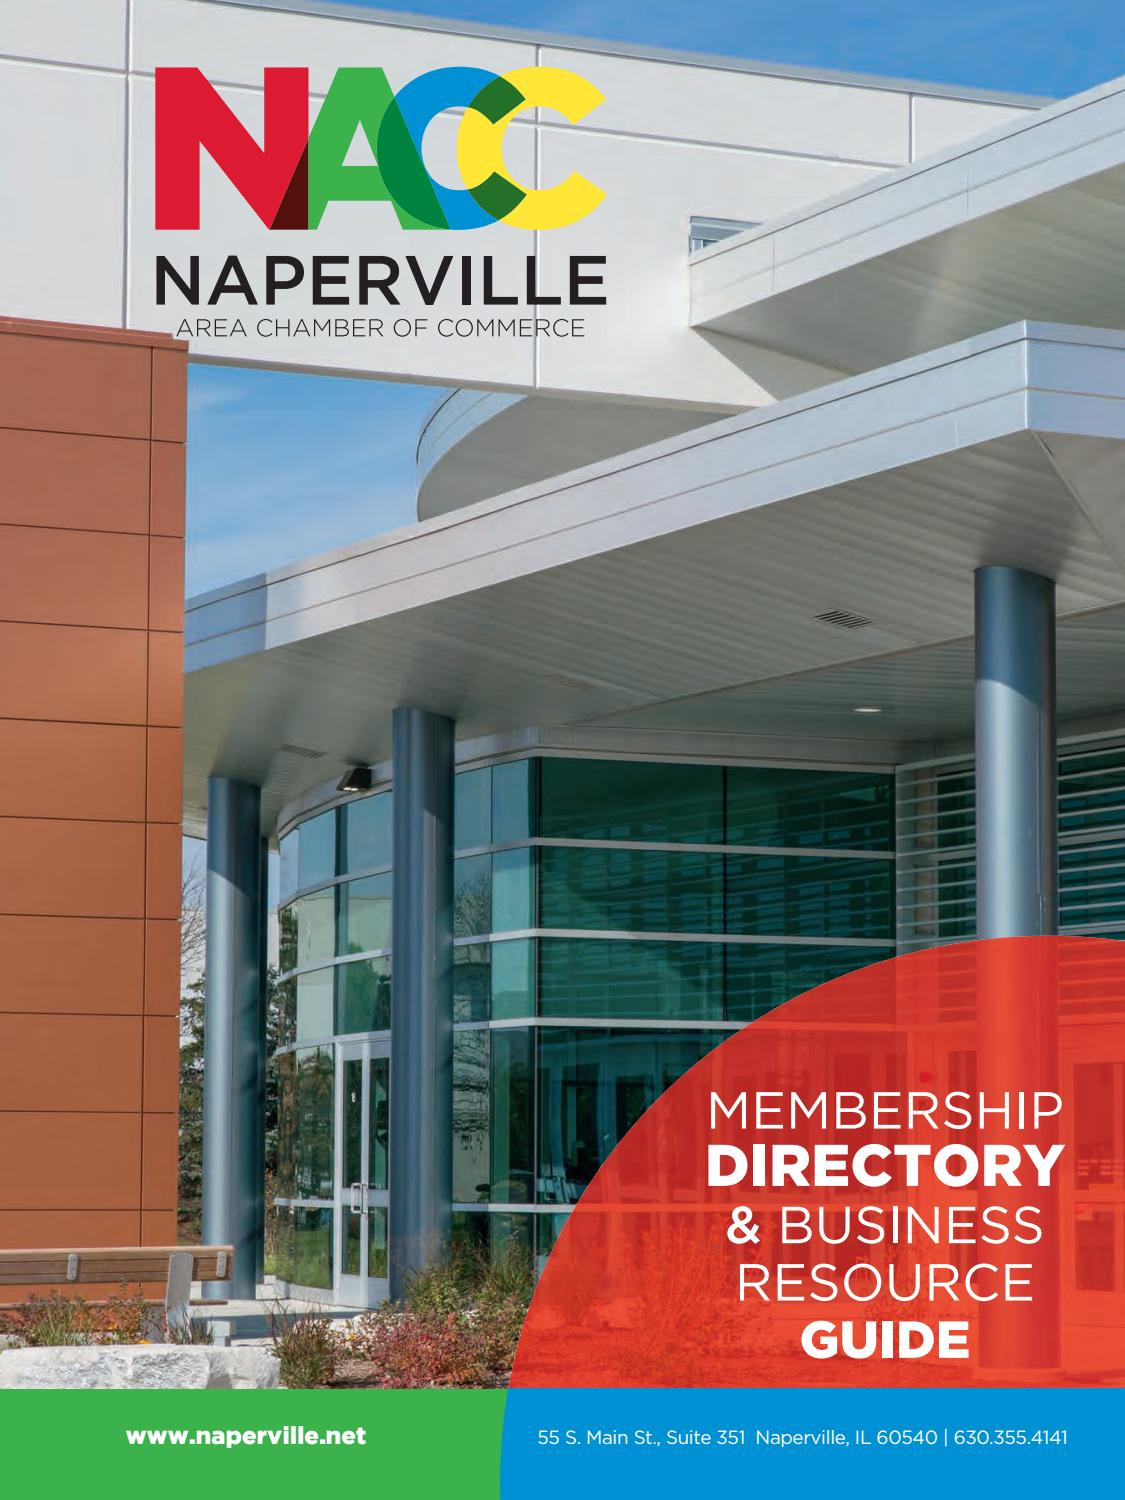 Naperville IL Chamber Guide 2017 by Town Square Publications, LLC - issuu